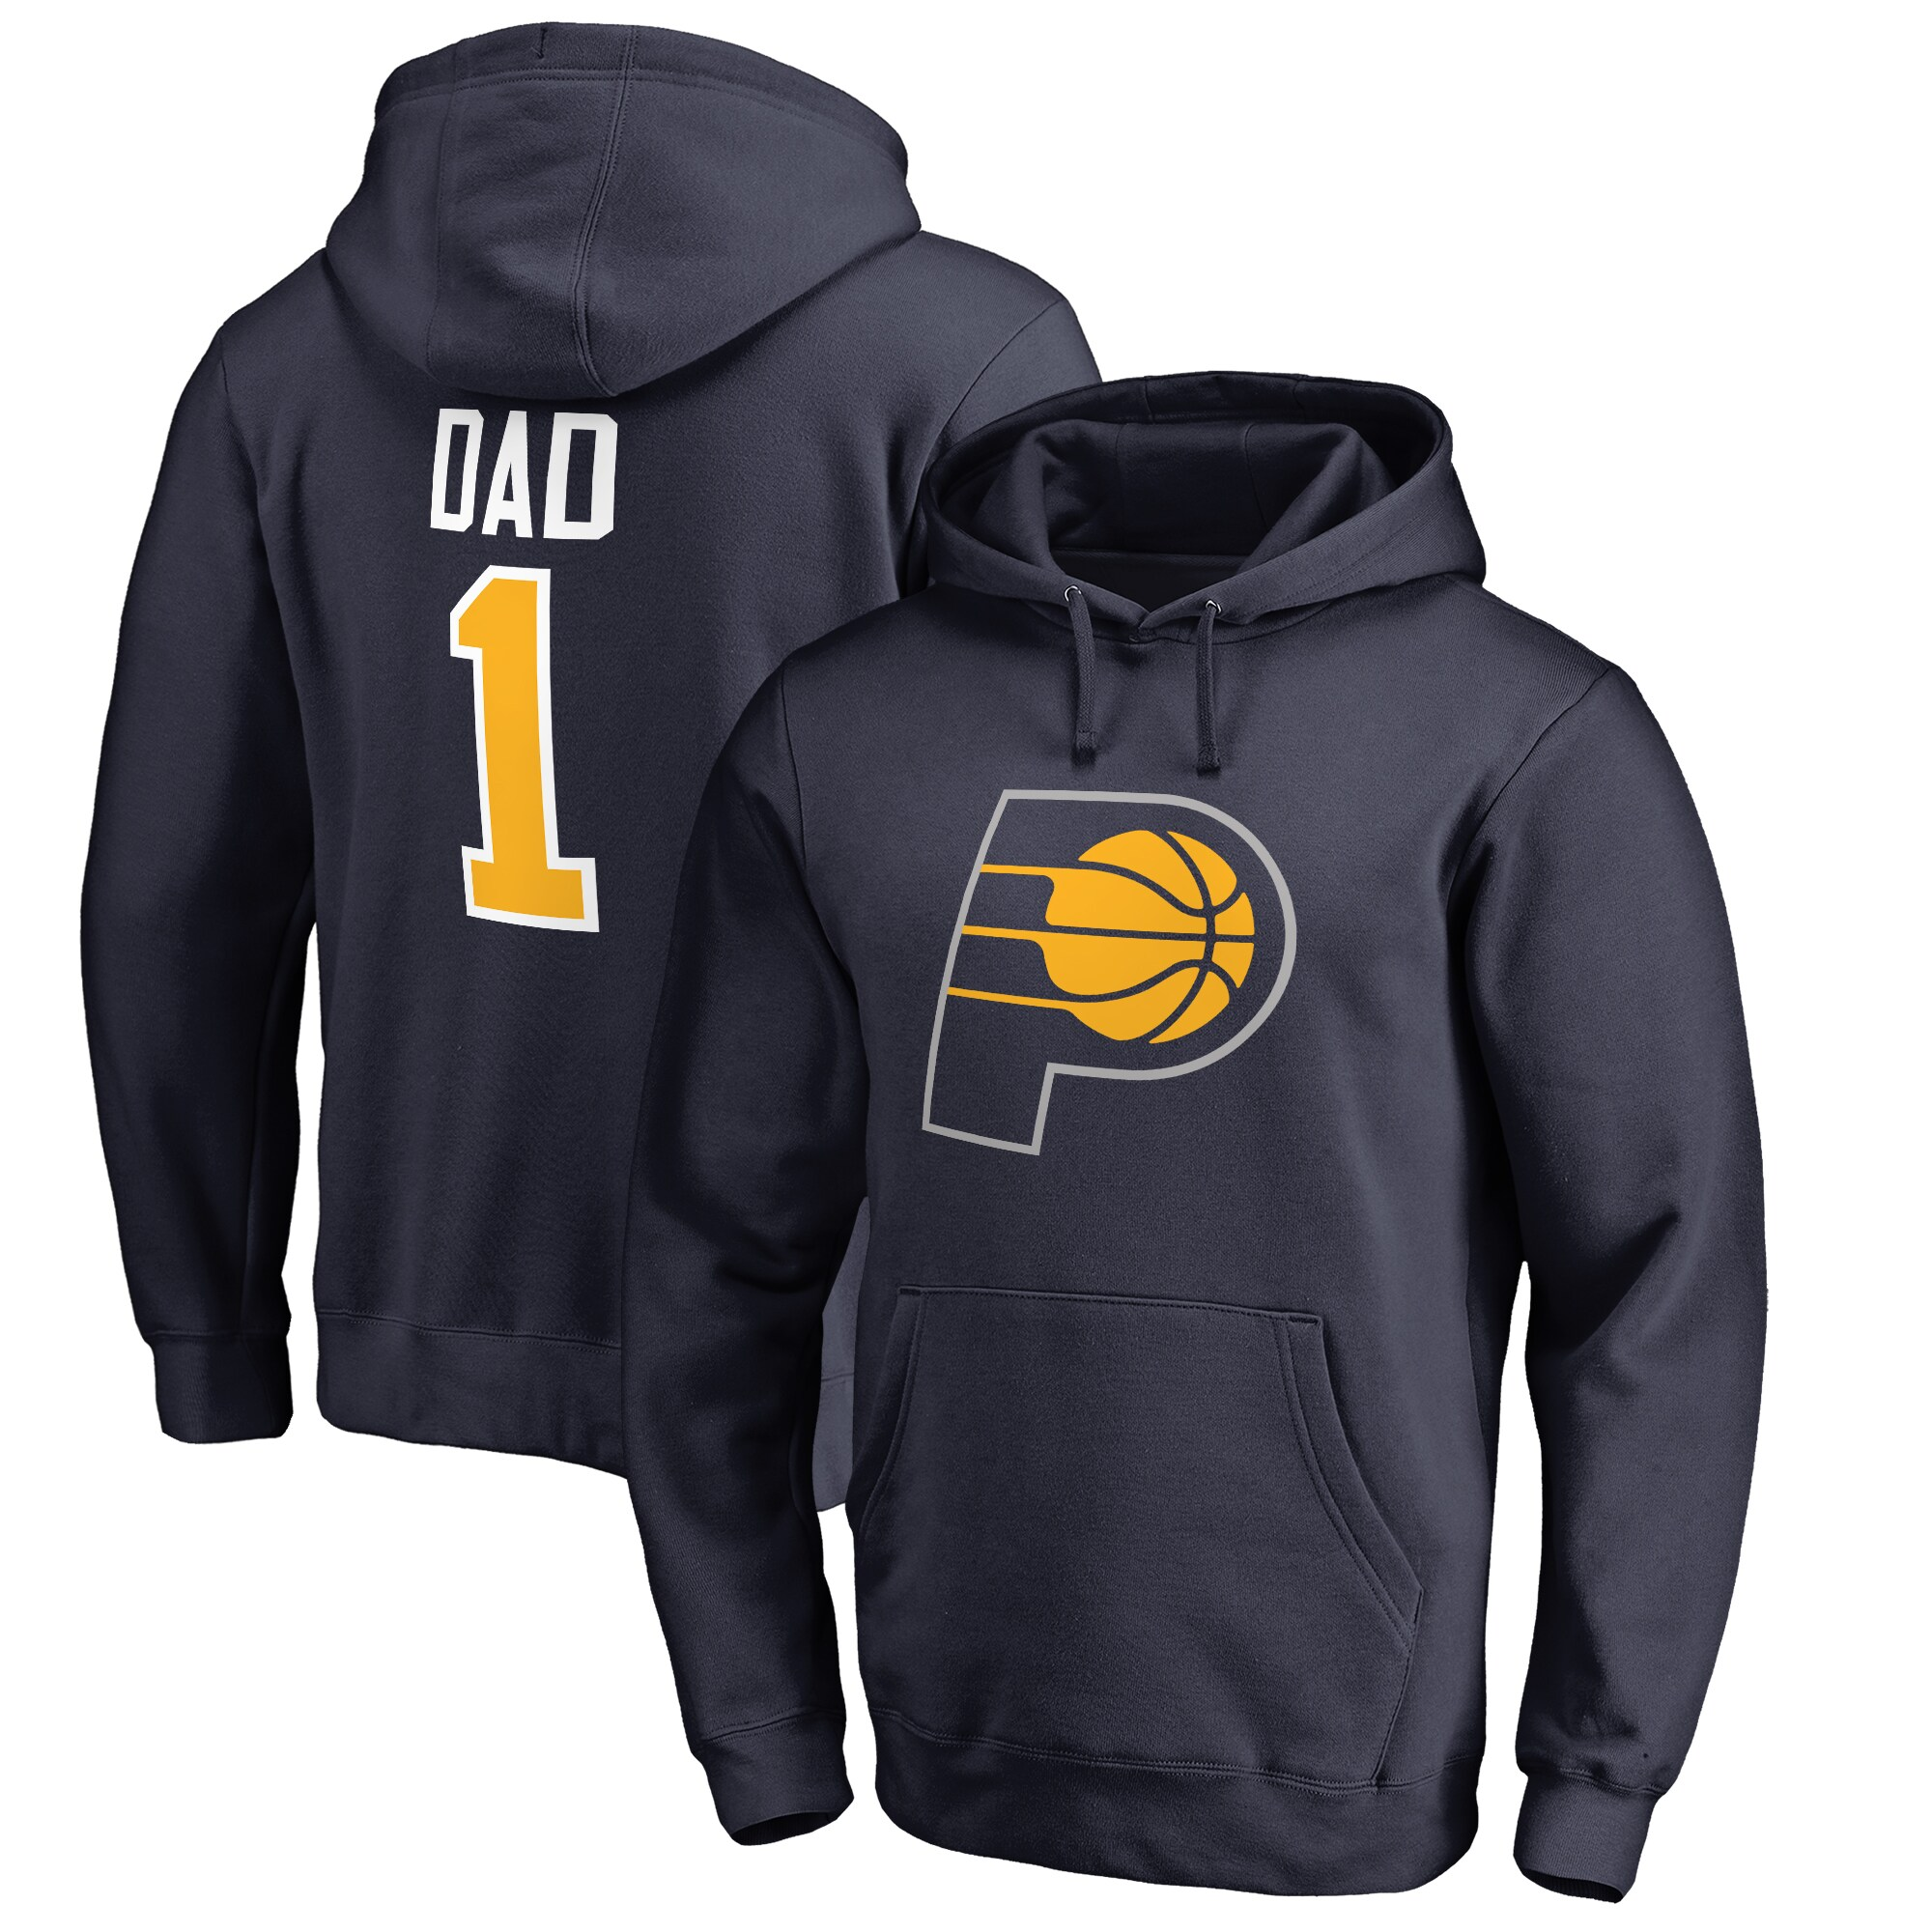 Indiana Pacers Fanatics Branded Big & Tall #1 Dad Pullover Hoodie - Navy